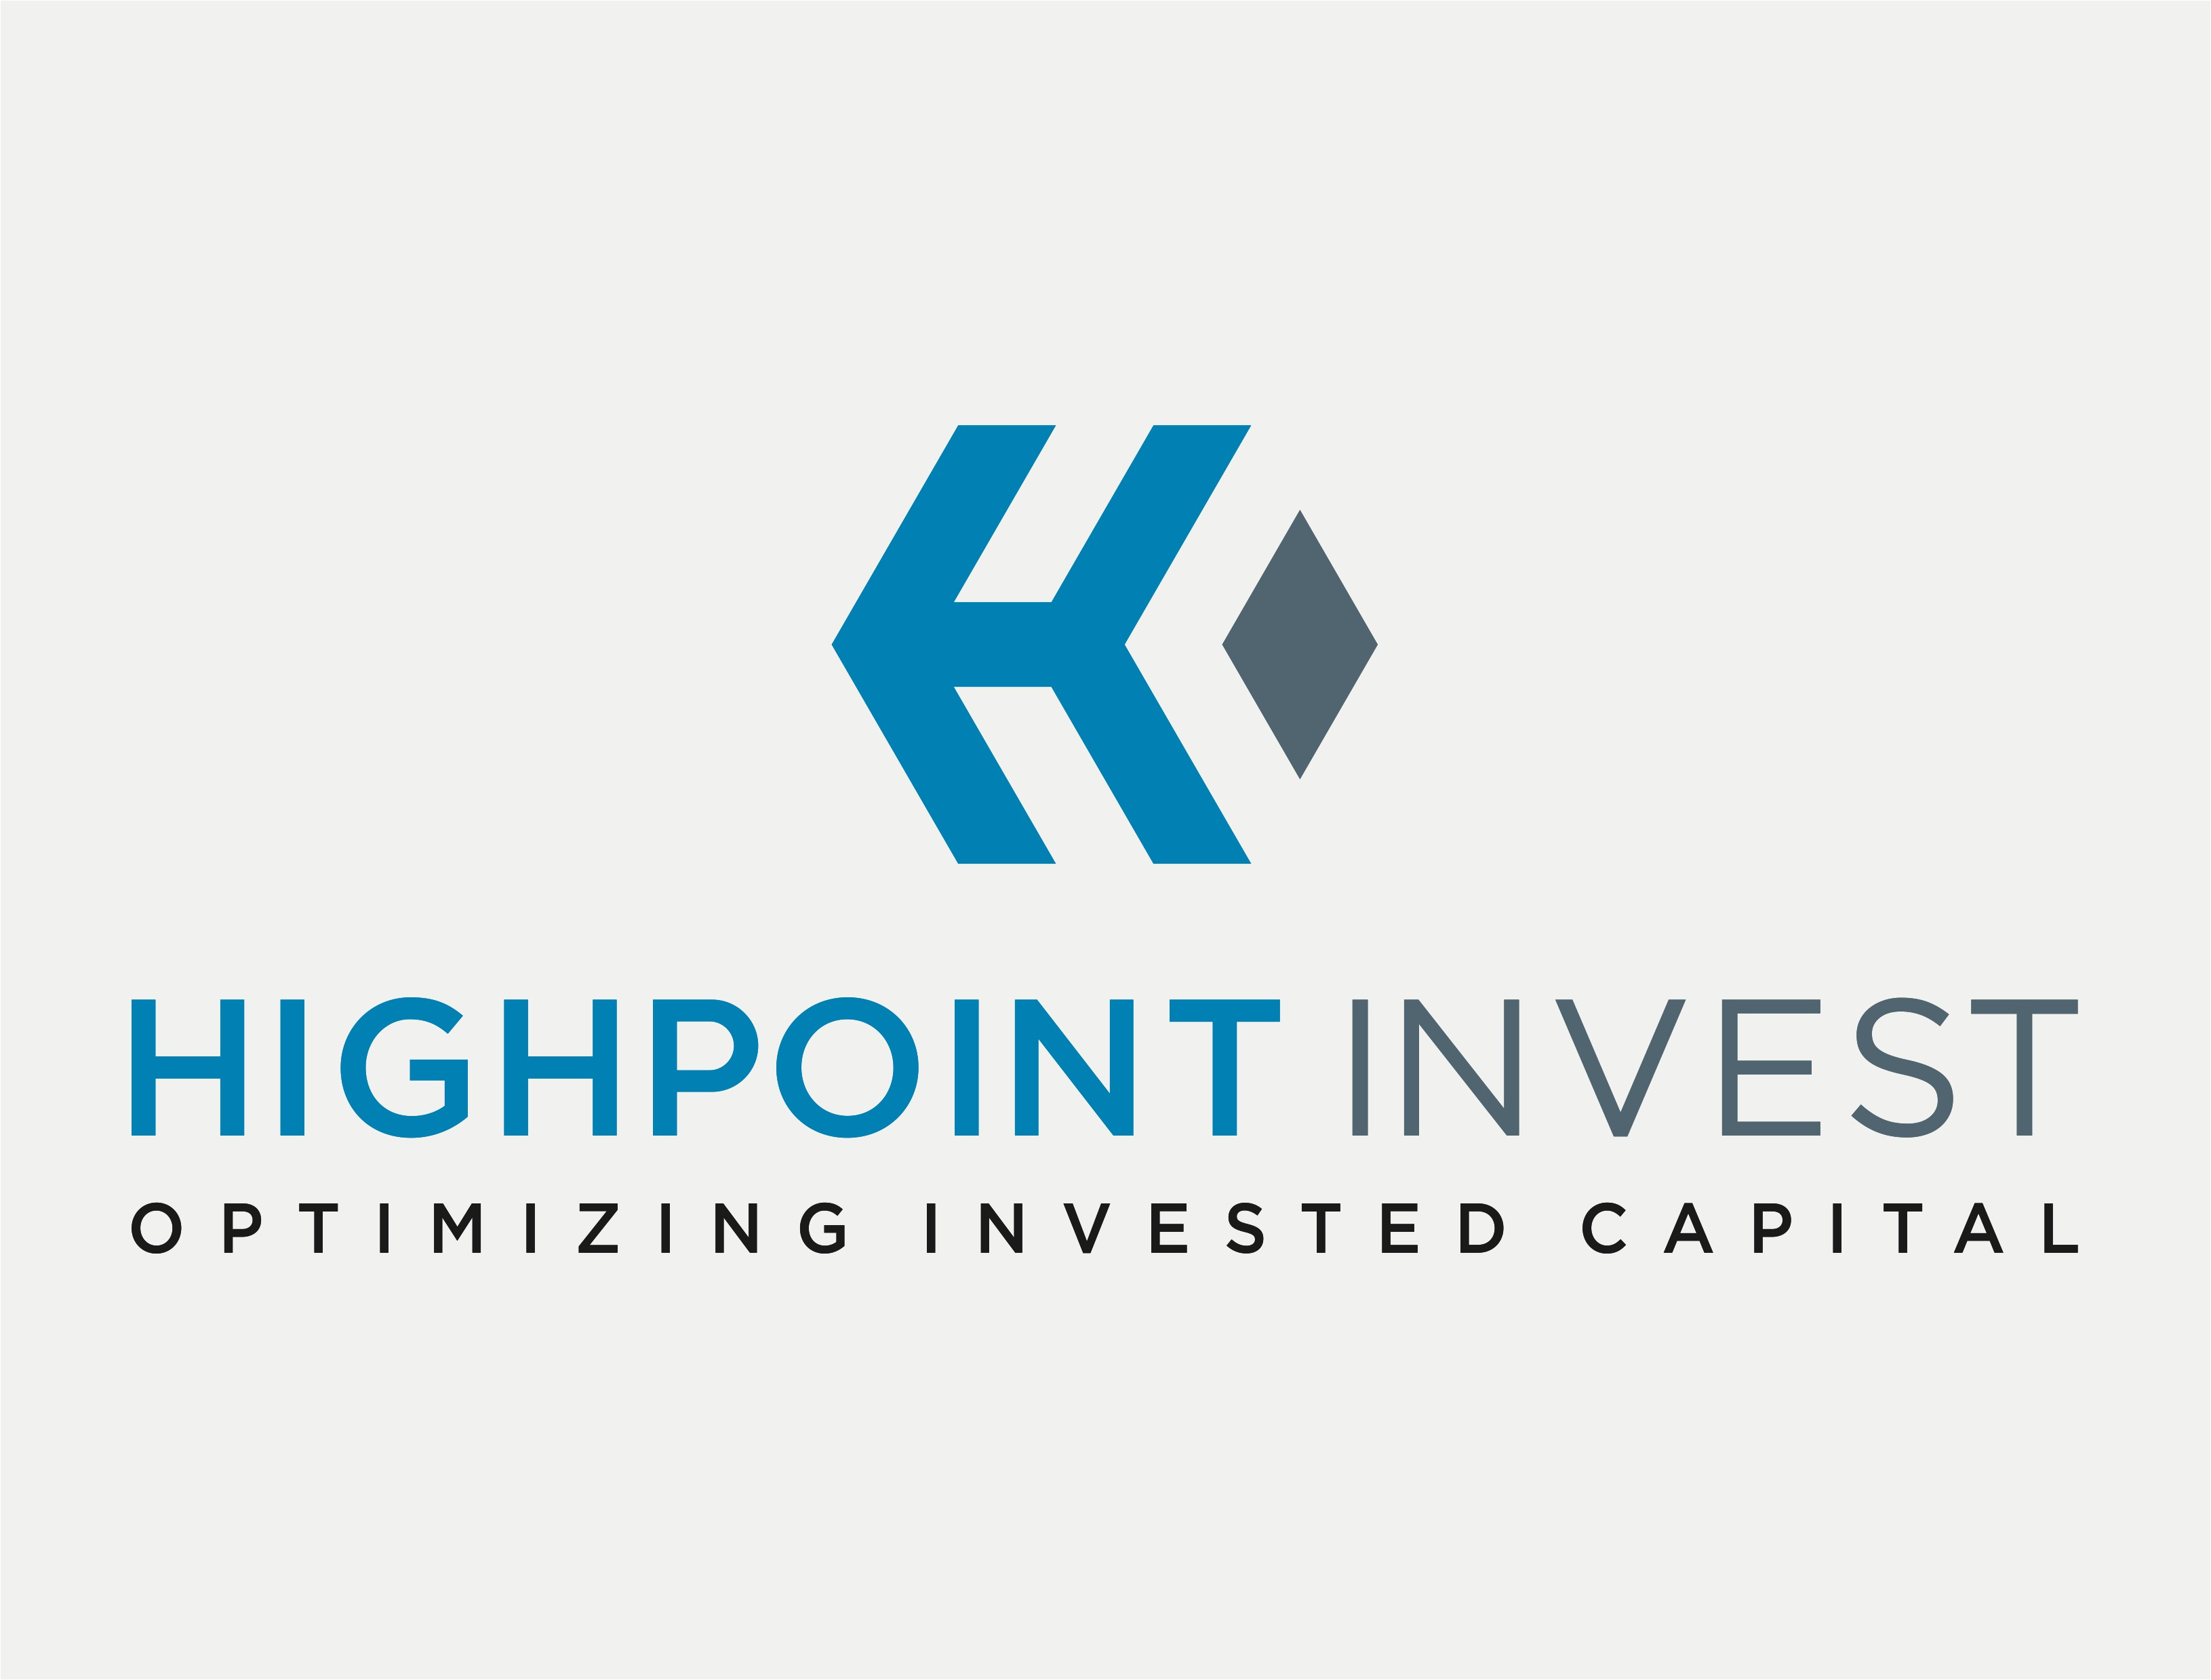 Innovation in invested capital